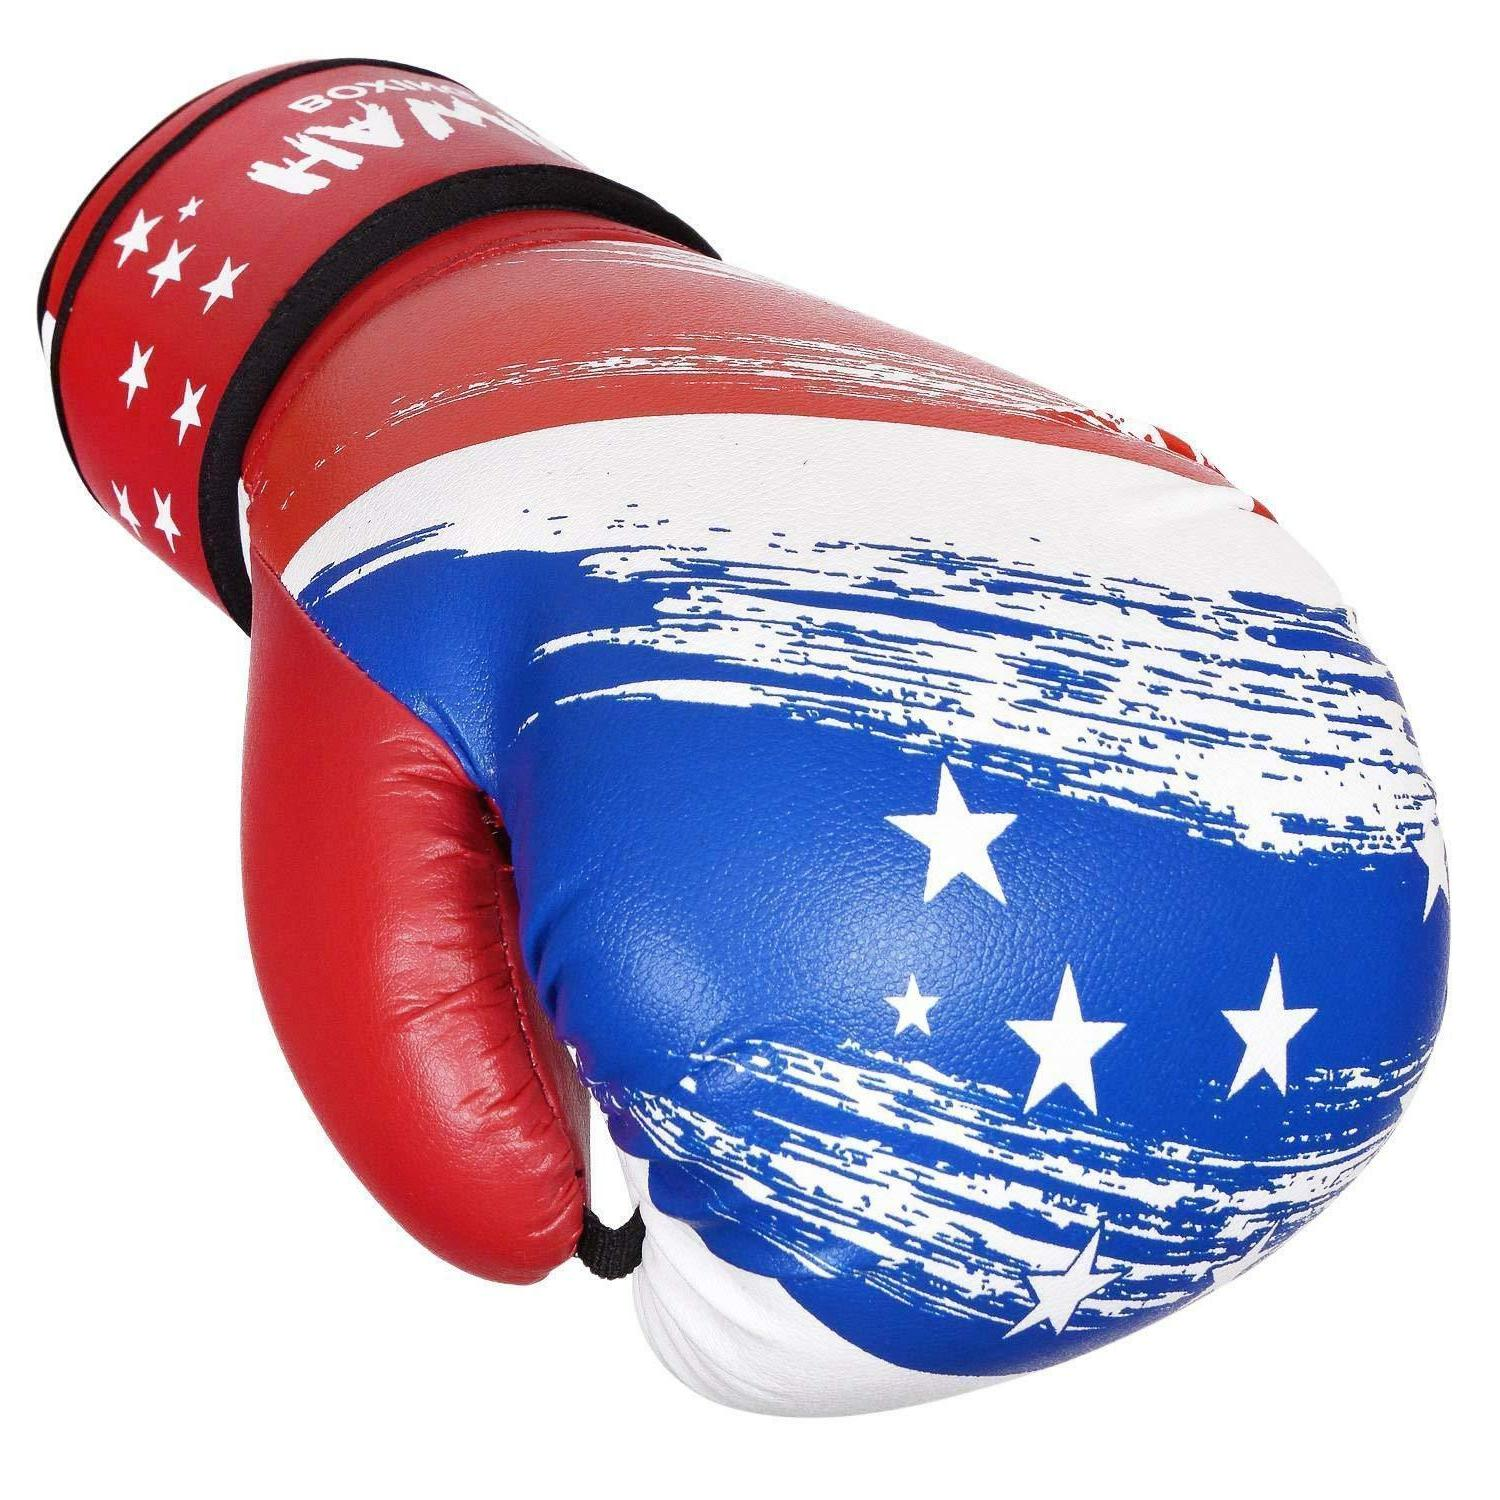 Unisex Sparring Kickboxing Bag Mitts